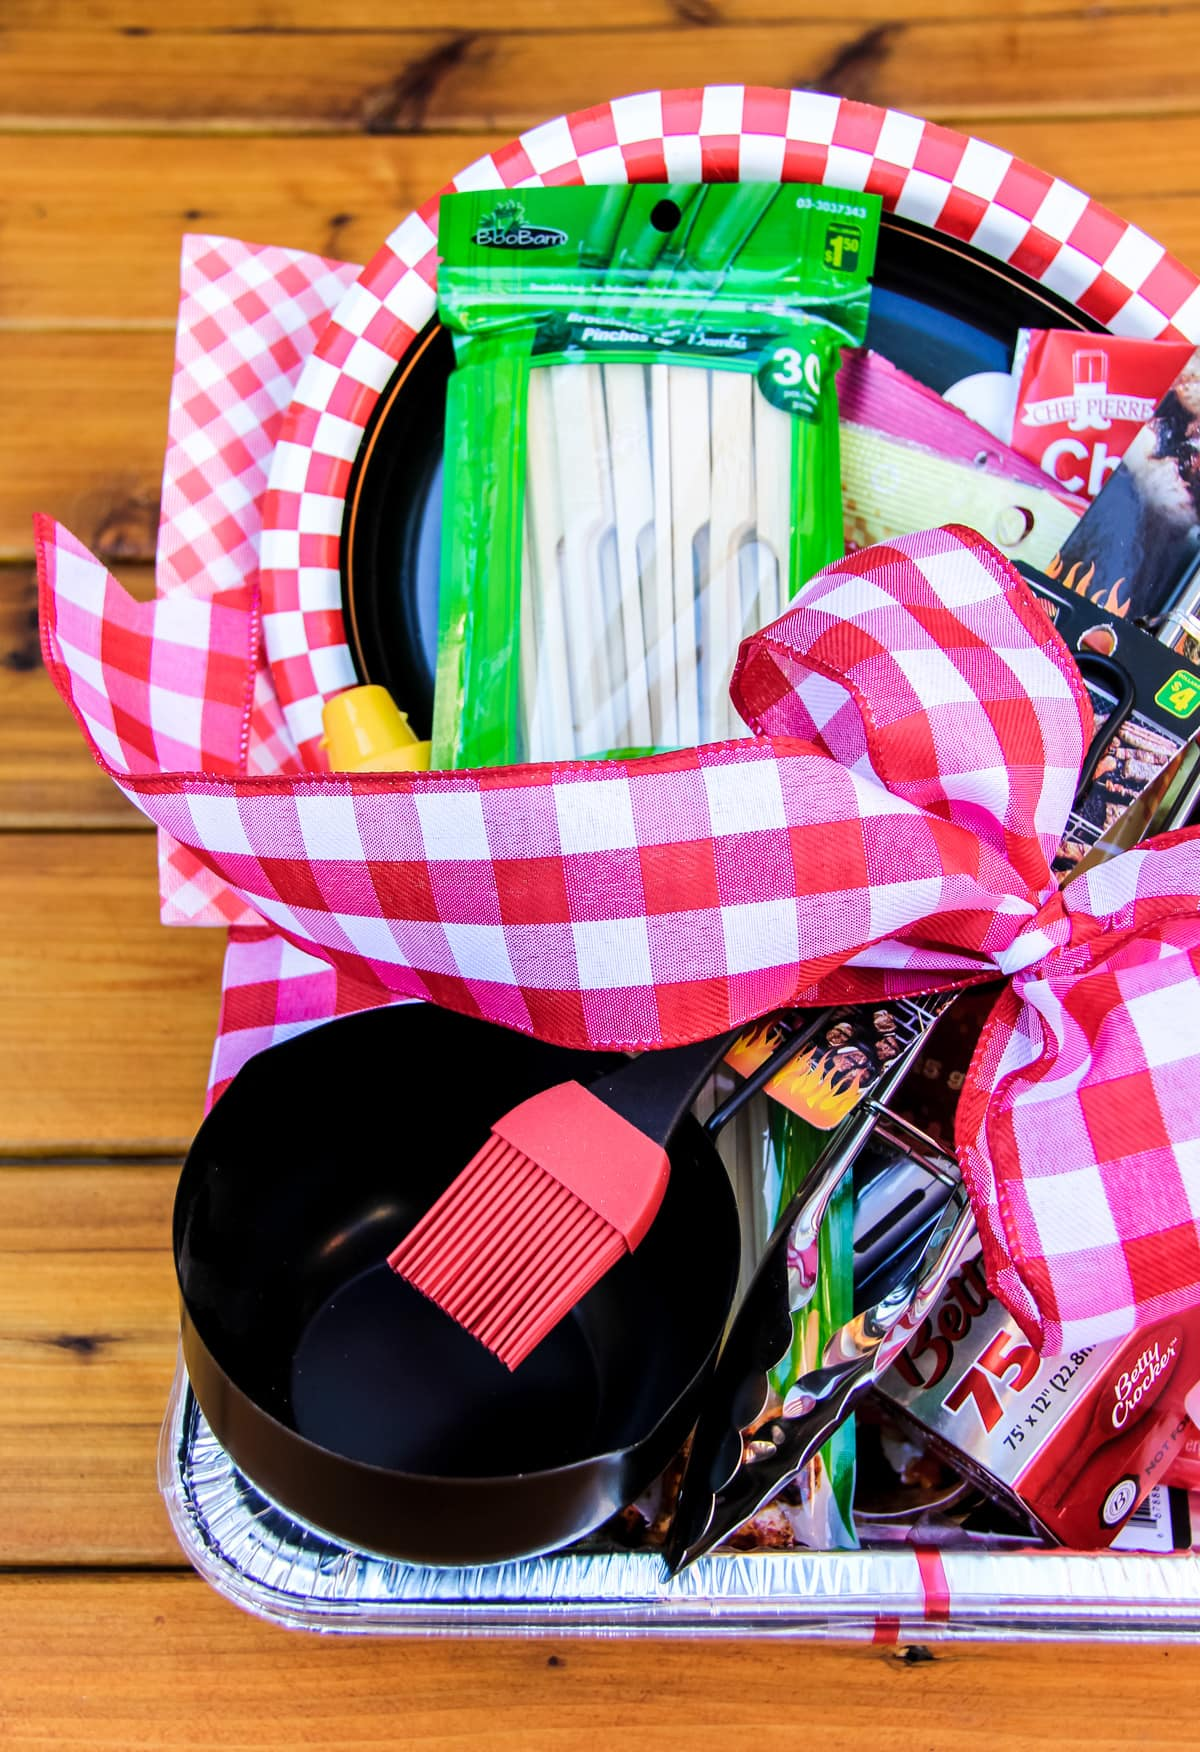 a top down view of half of a father's day gift of barbecue items like a basting brush and bowl, skewers, tongs and a red gingham ribbon